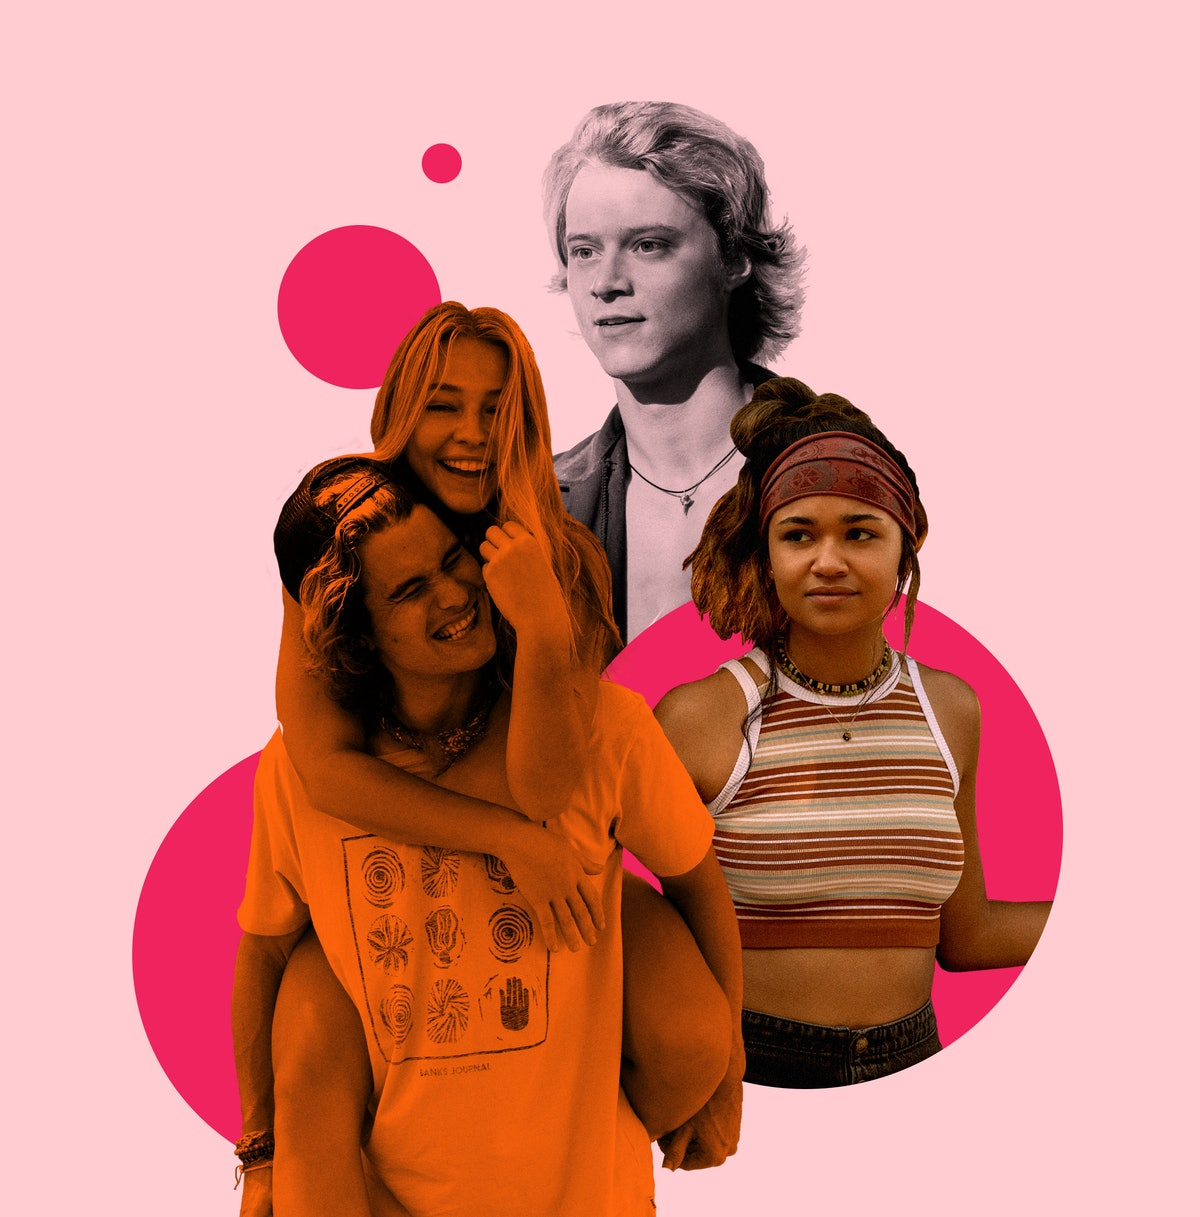 Chase Stokes, Madelyn Cline, Rudy Pankow, and Madison Bailey from 'Outer Banks'